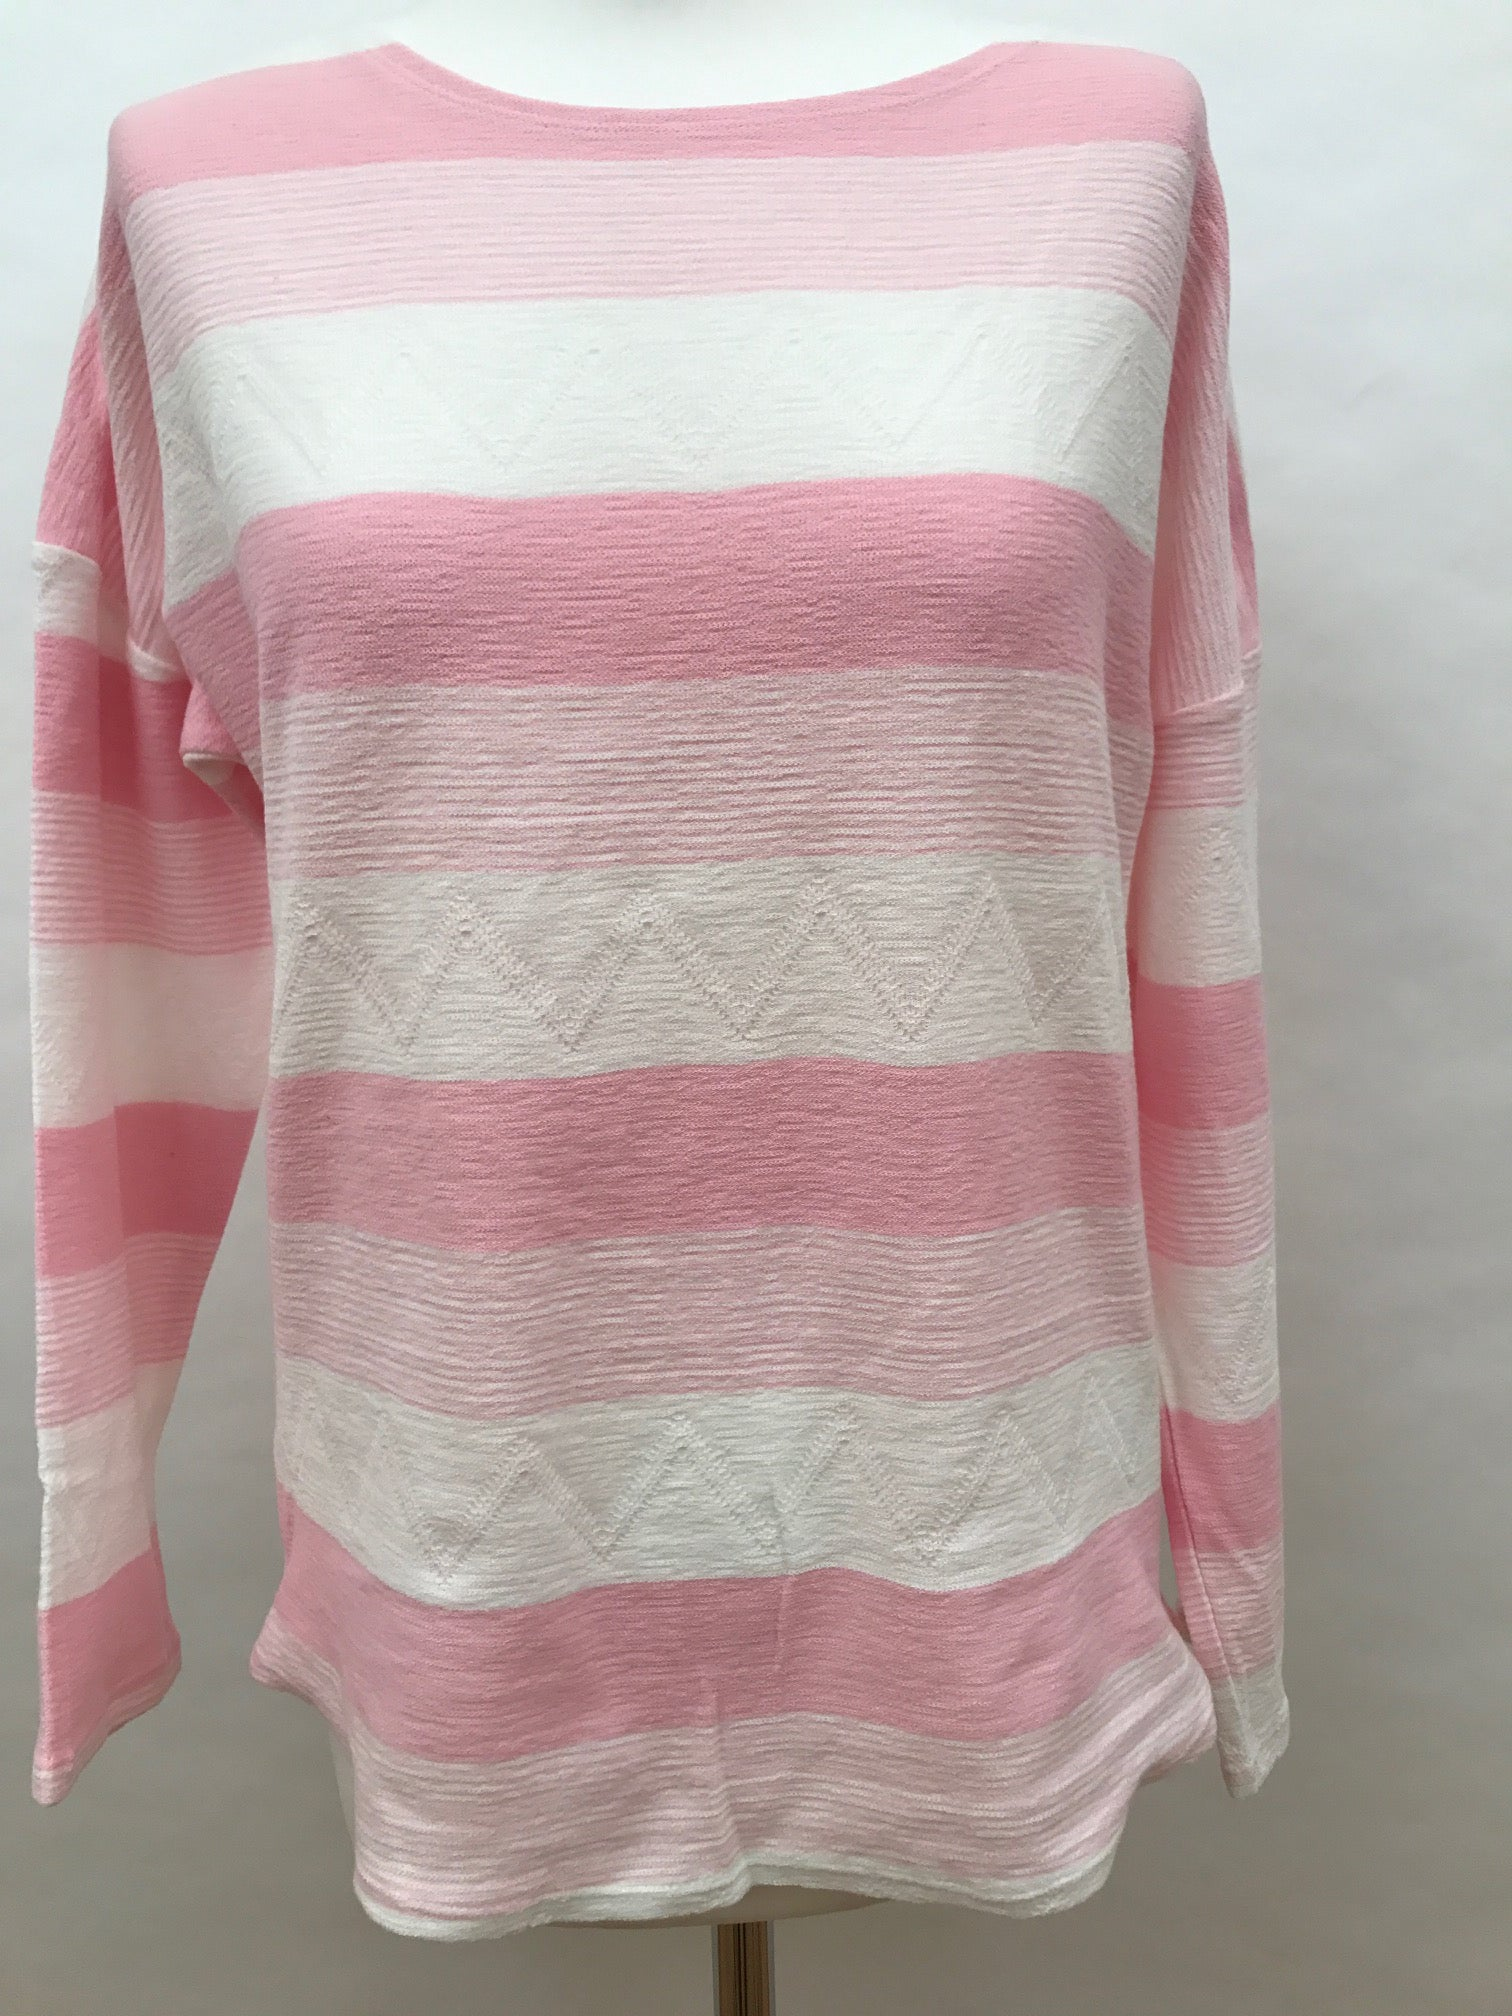 Long Sleeve Top - Pink Wide Stripe